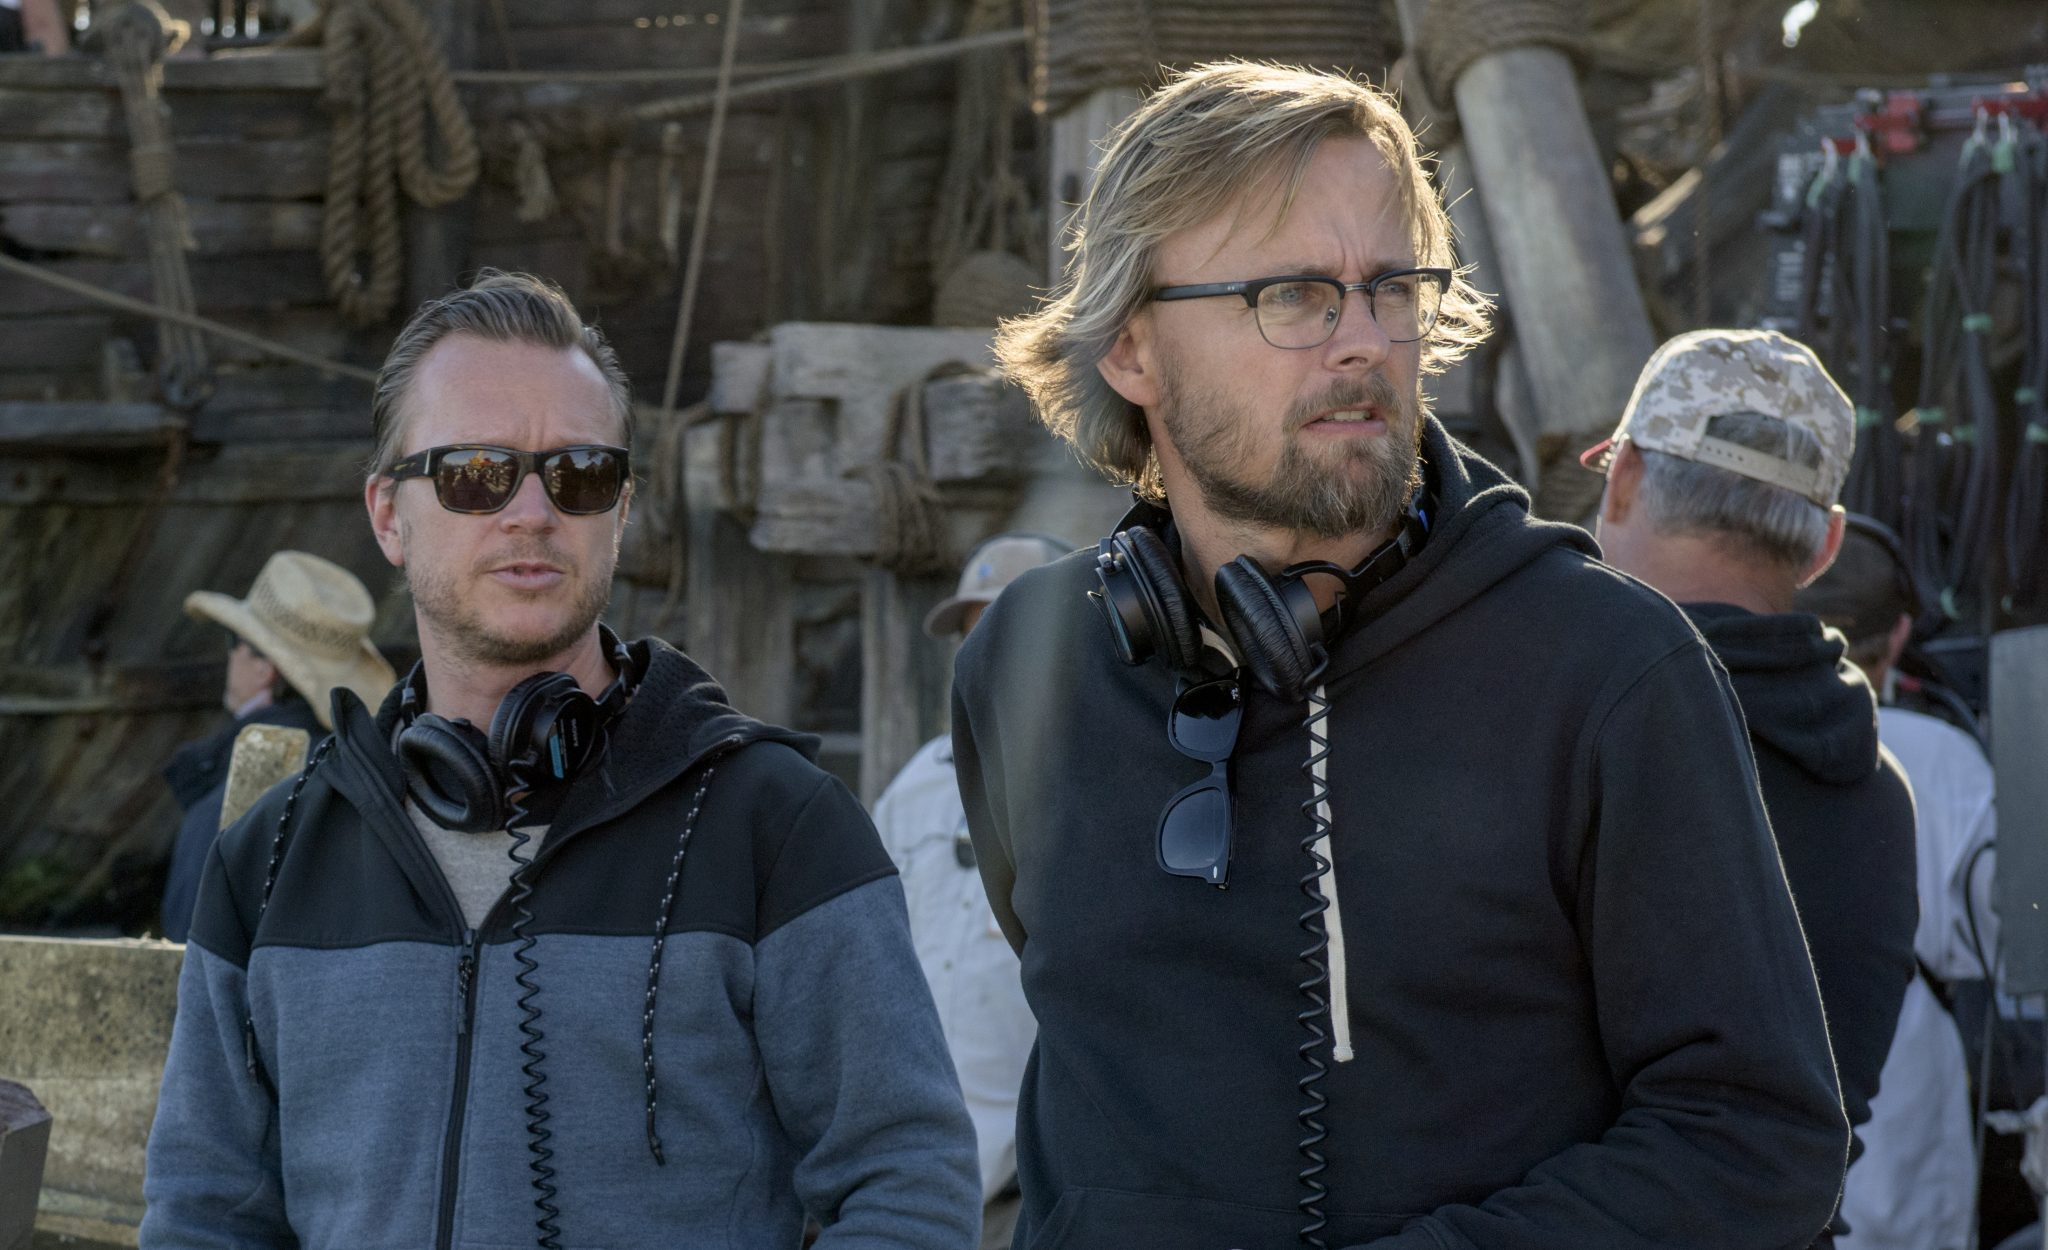 Five Fun Facts I Learned About Directors Espen Sandberg And Joachim Ronning